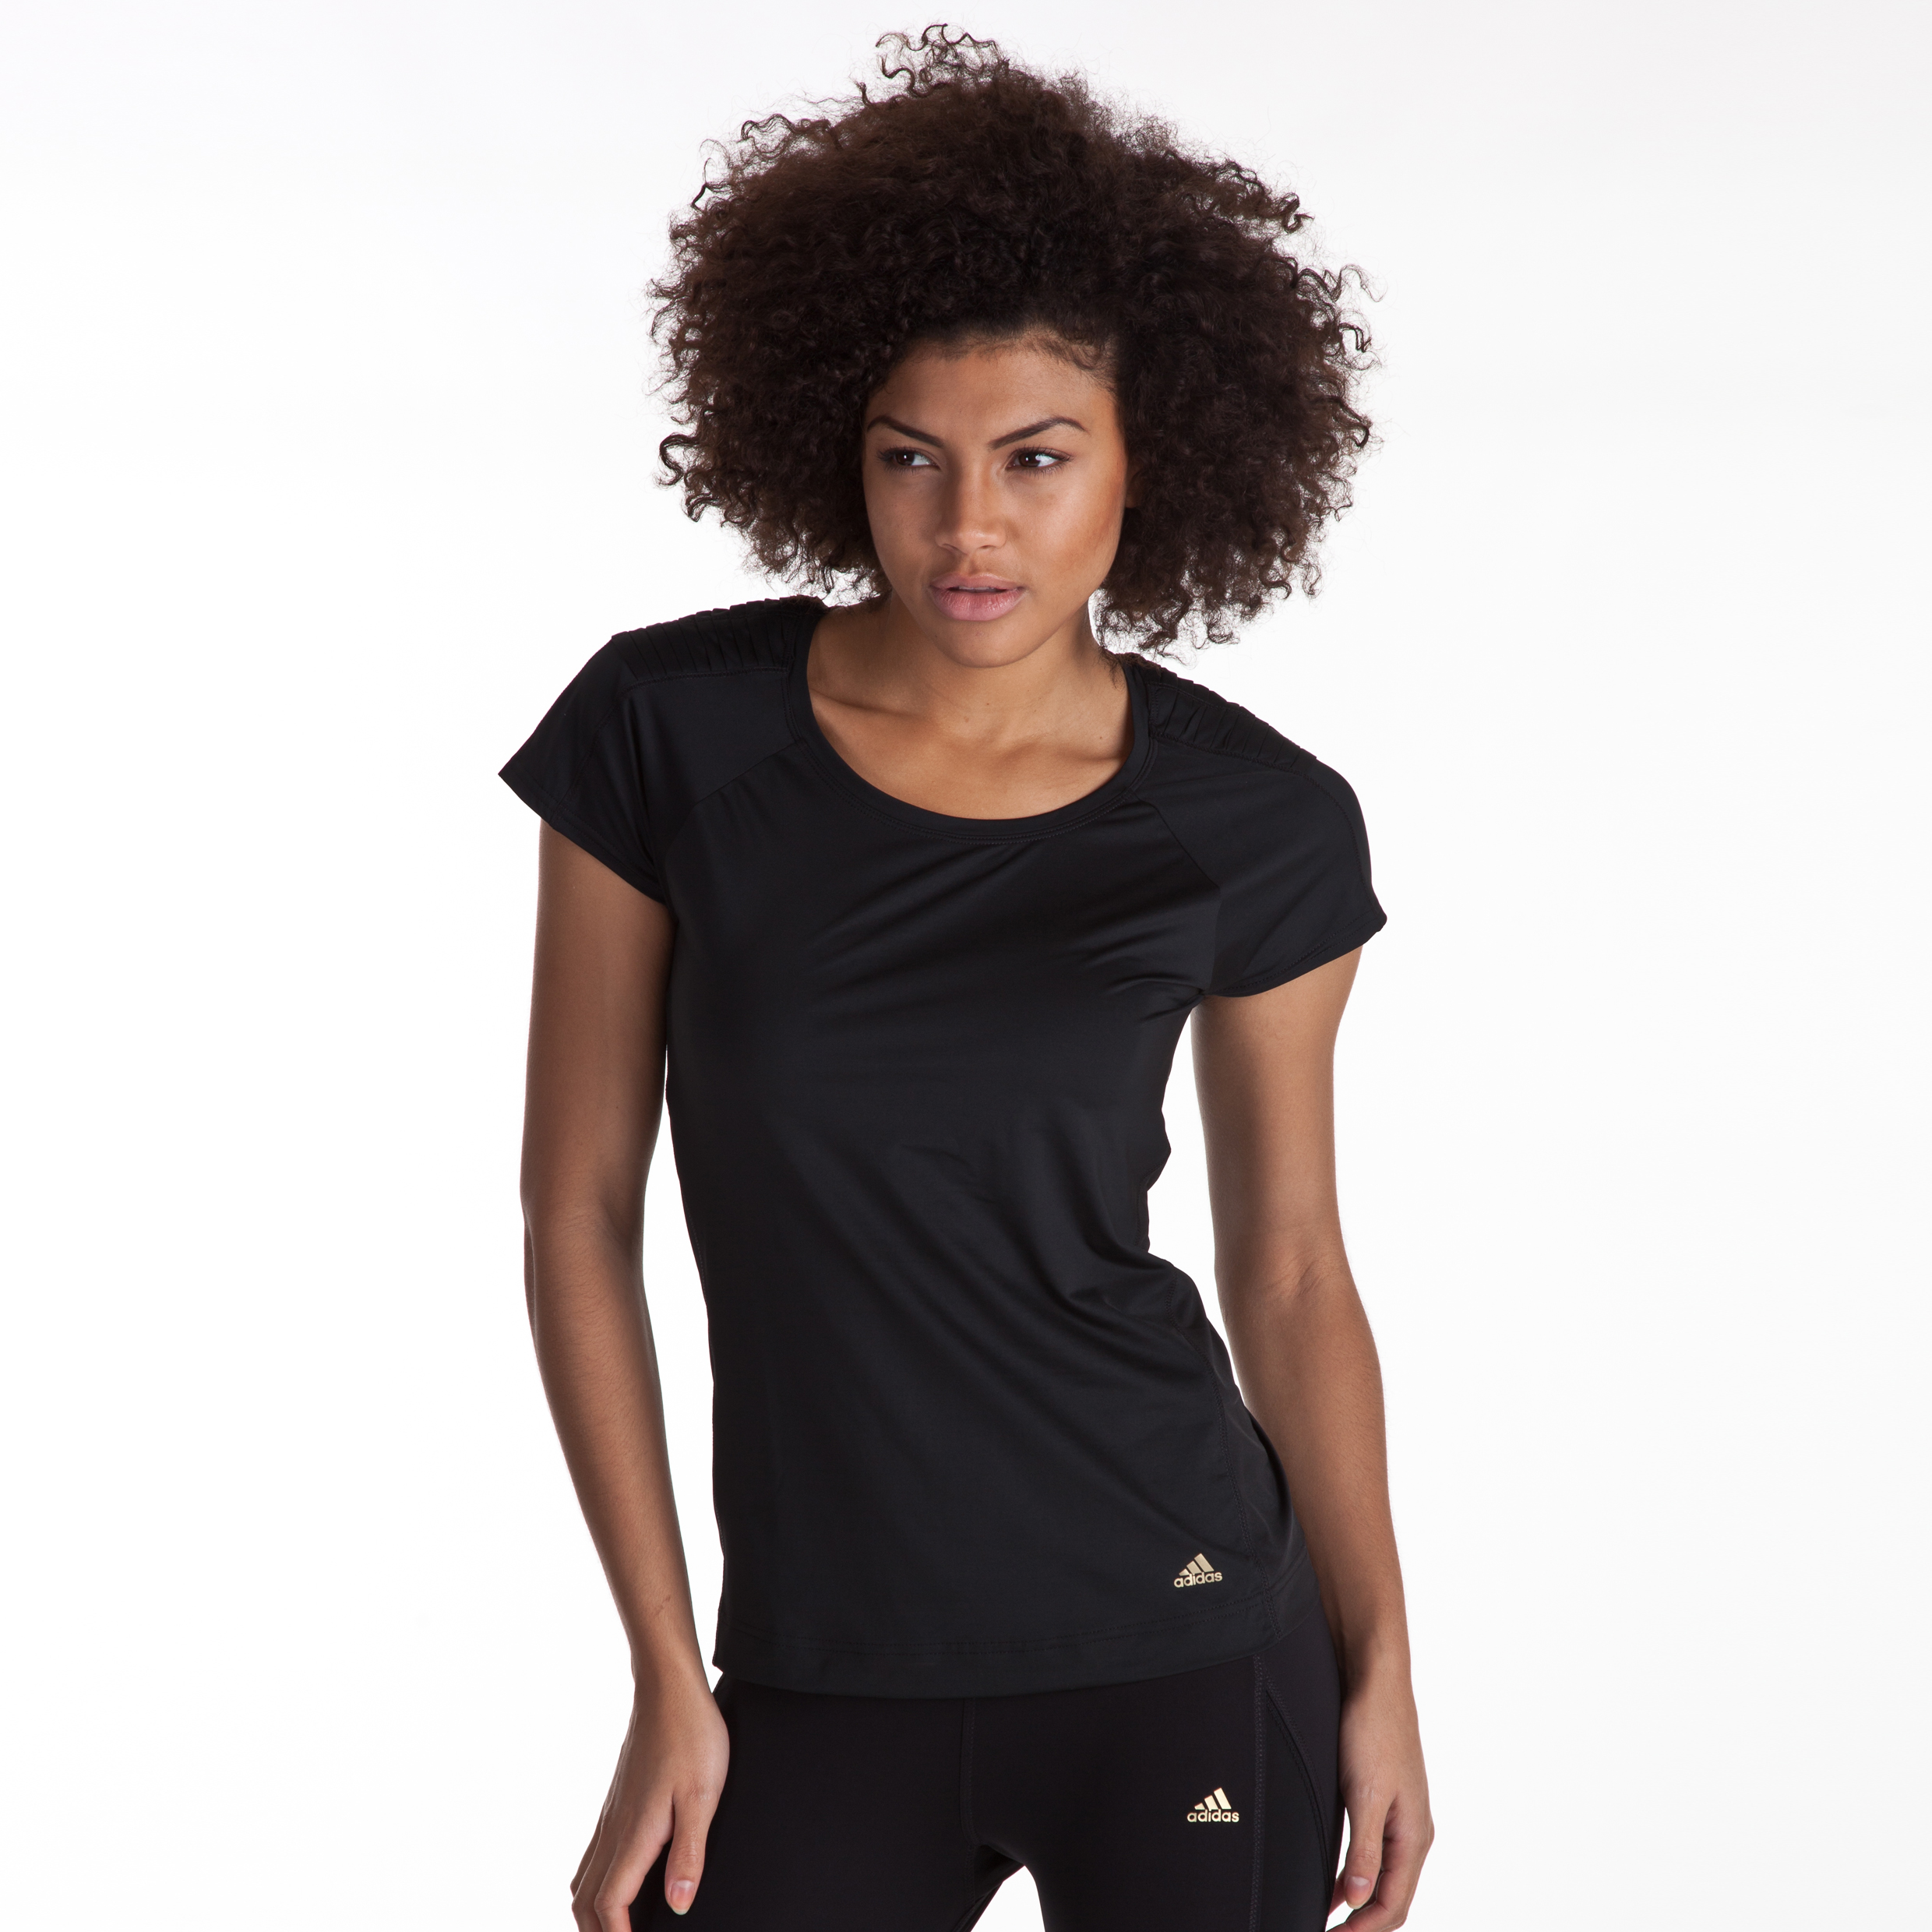 Adidas Studio Power Theme Tee - Black - Womens